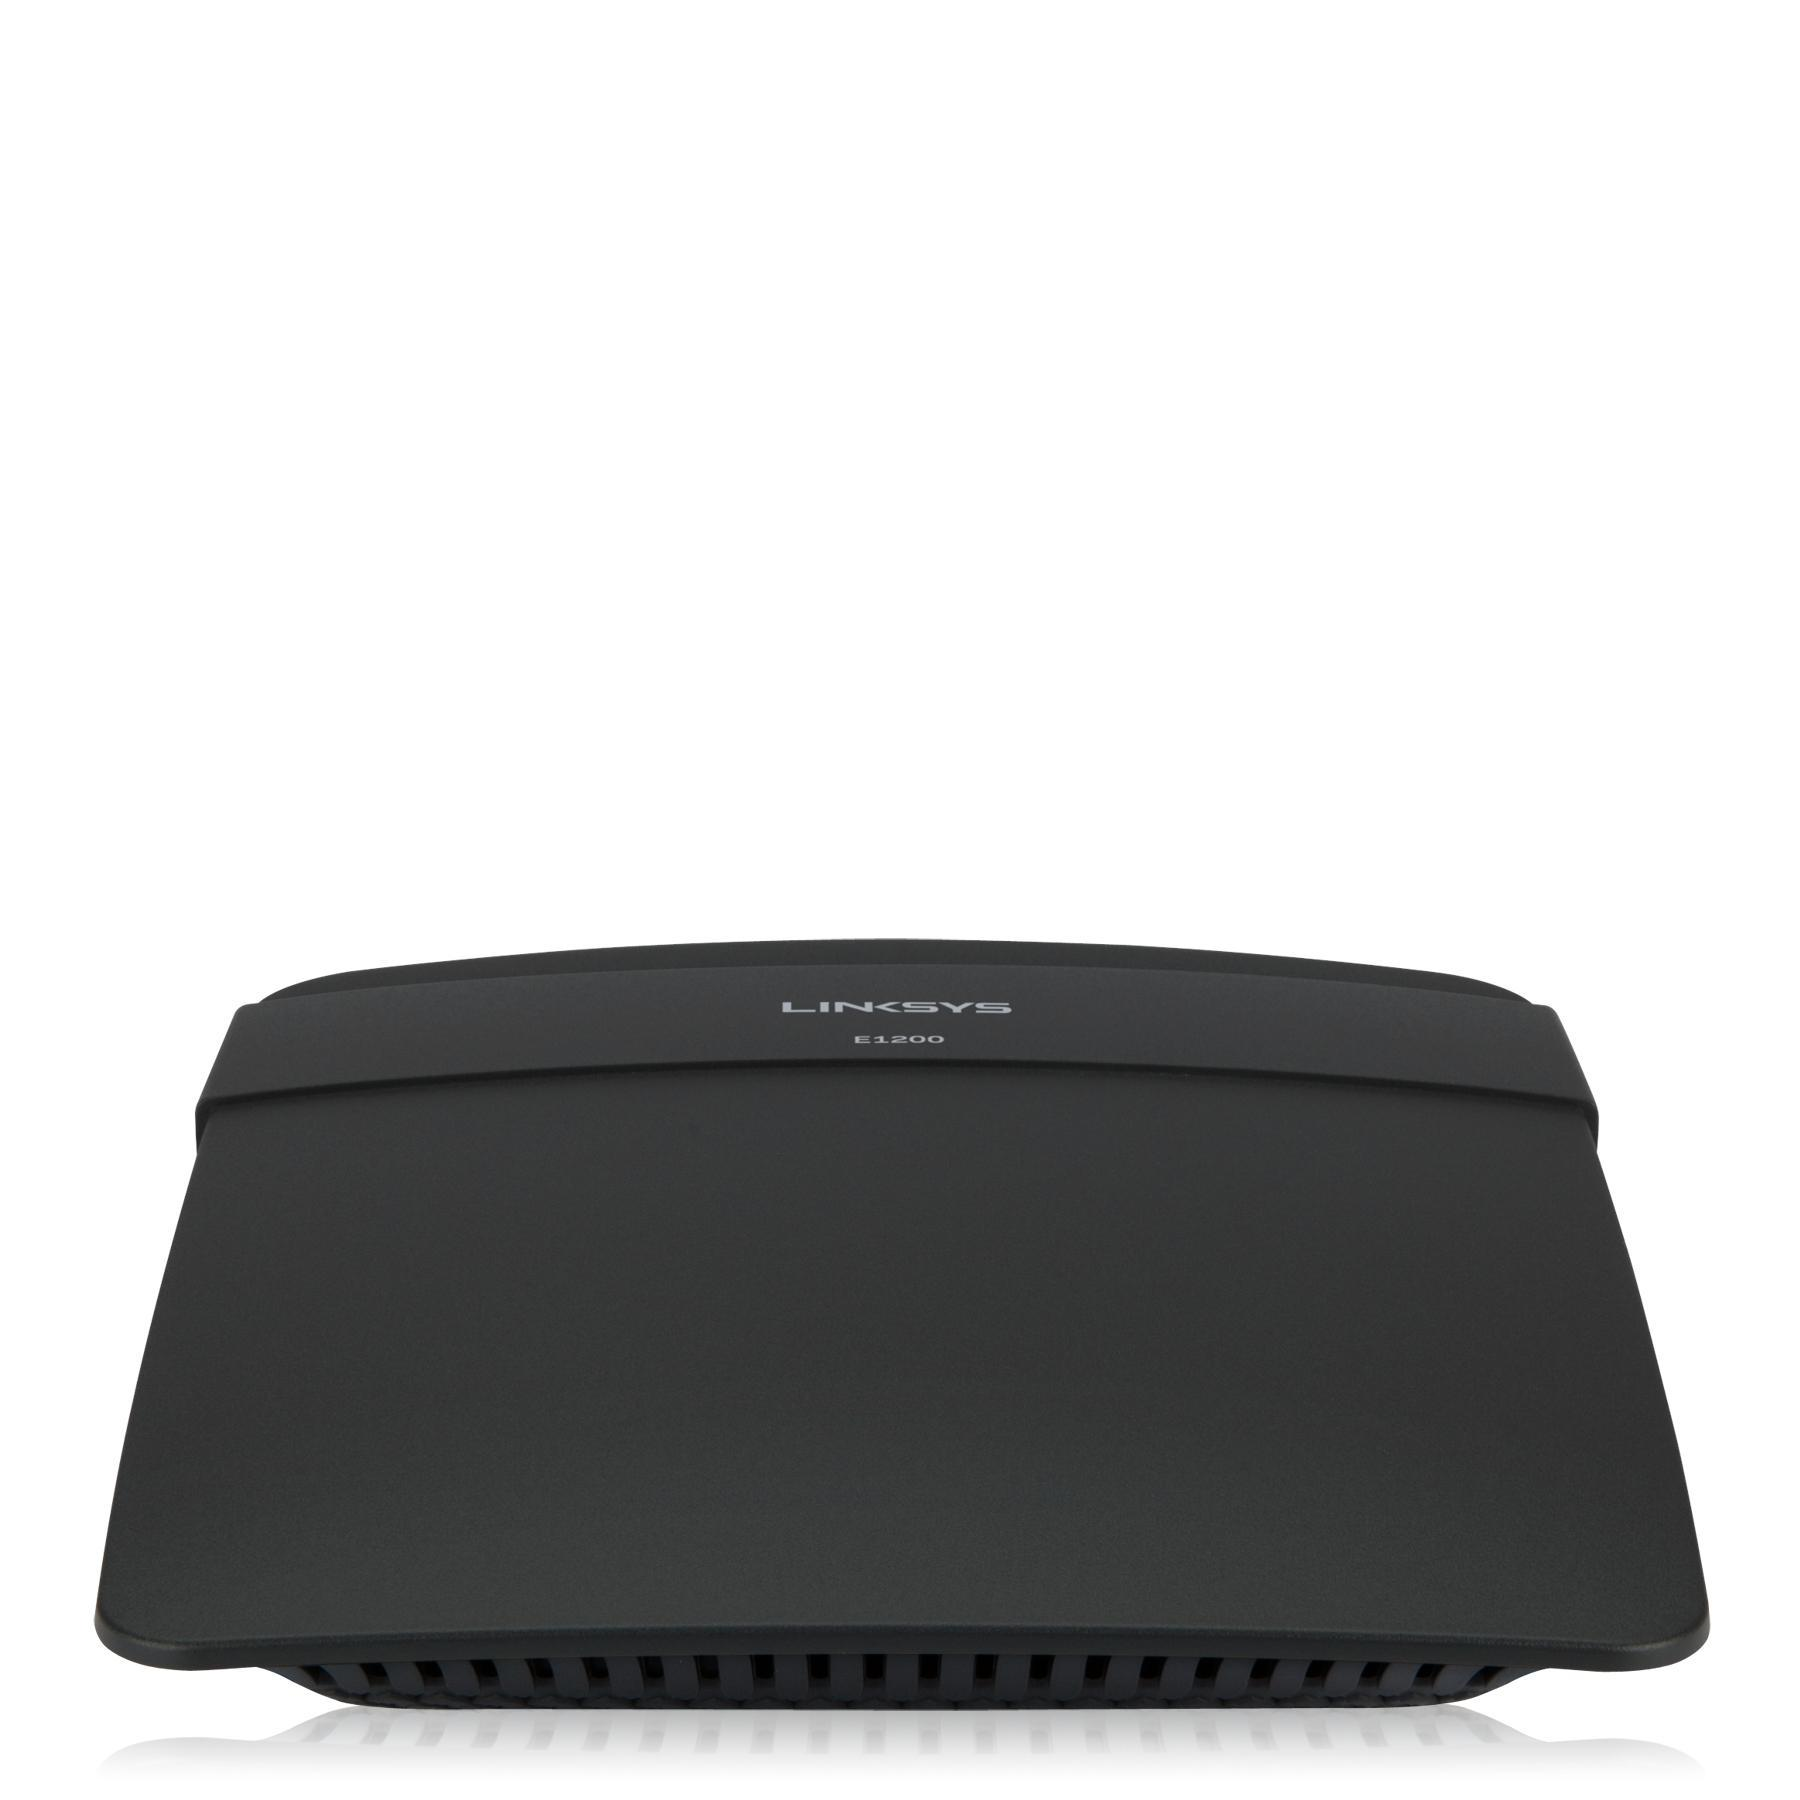 how to connect dlink router to linksys router wirelessly